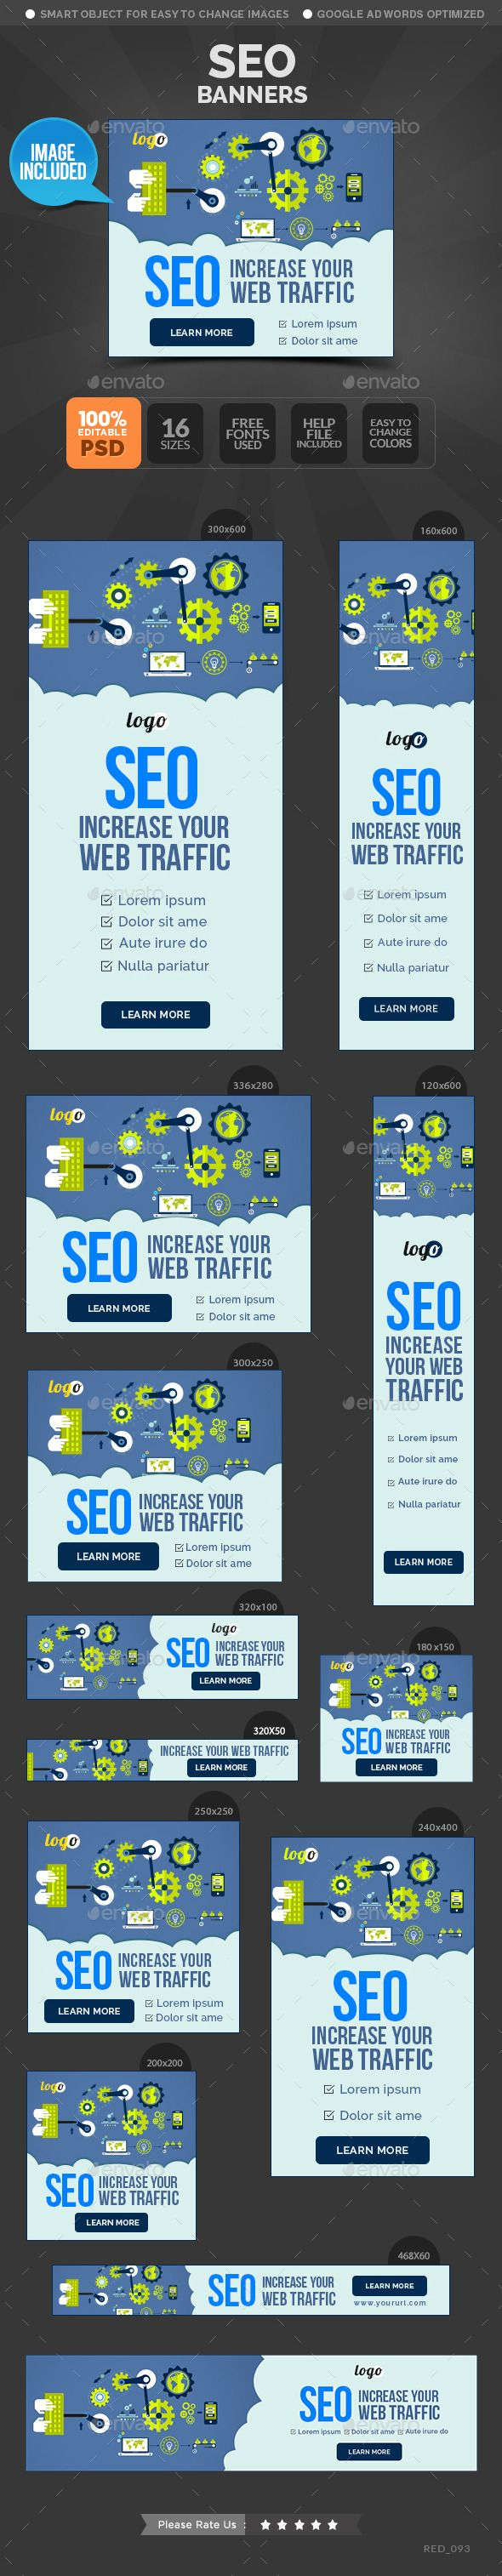 SEO Banners Template